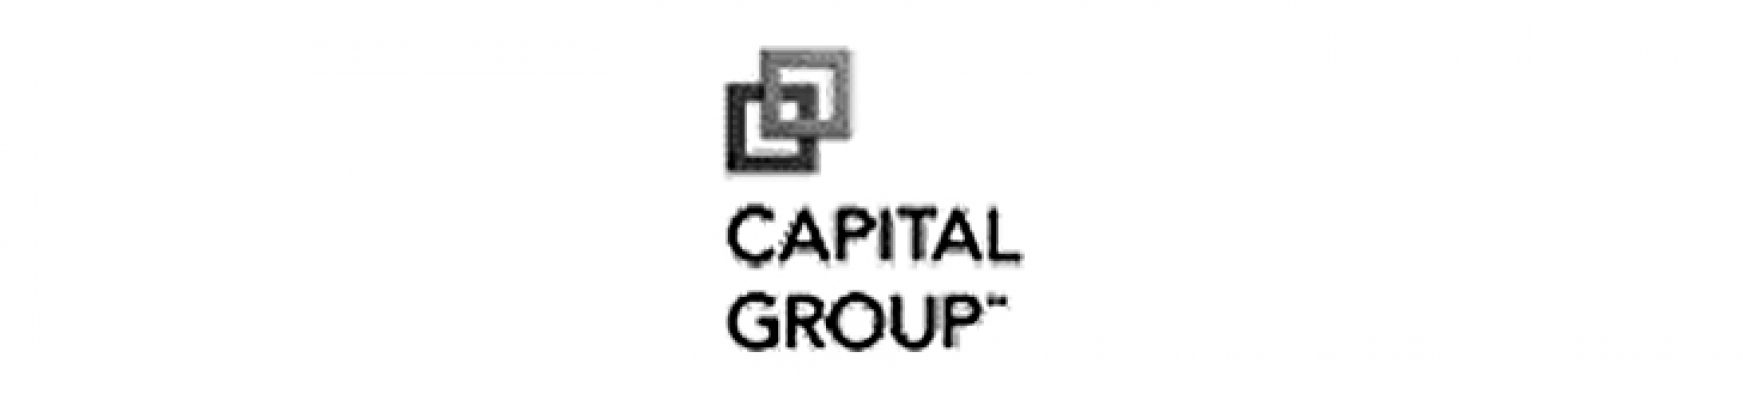 capital-group